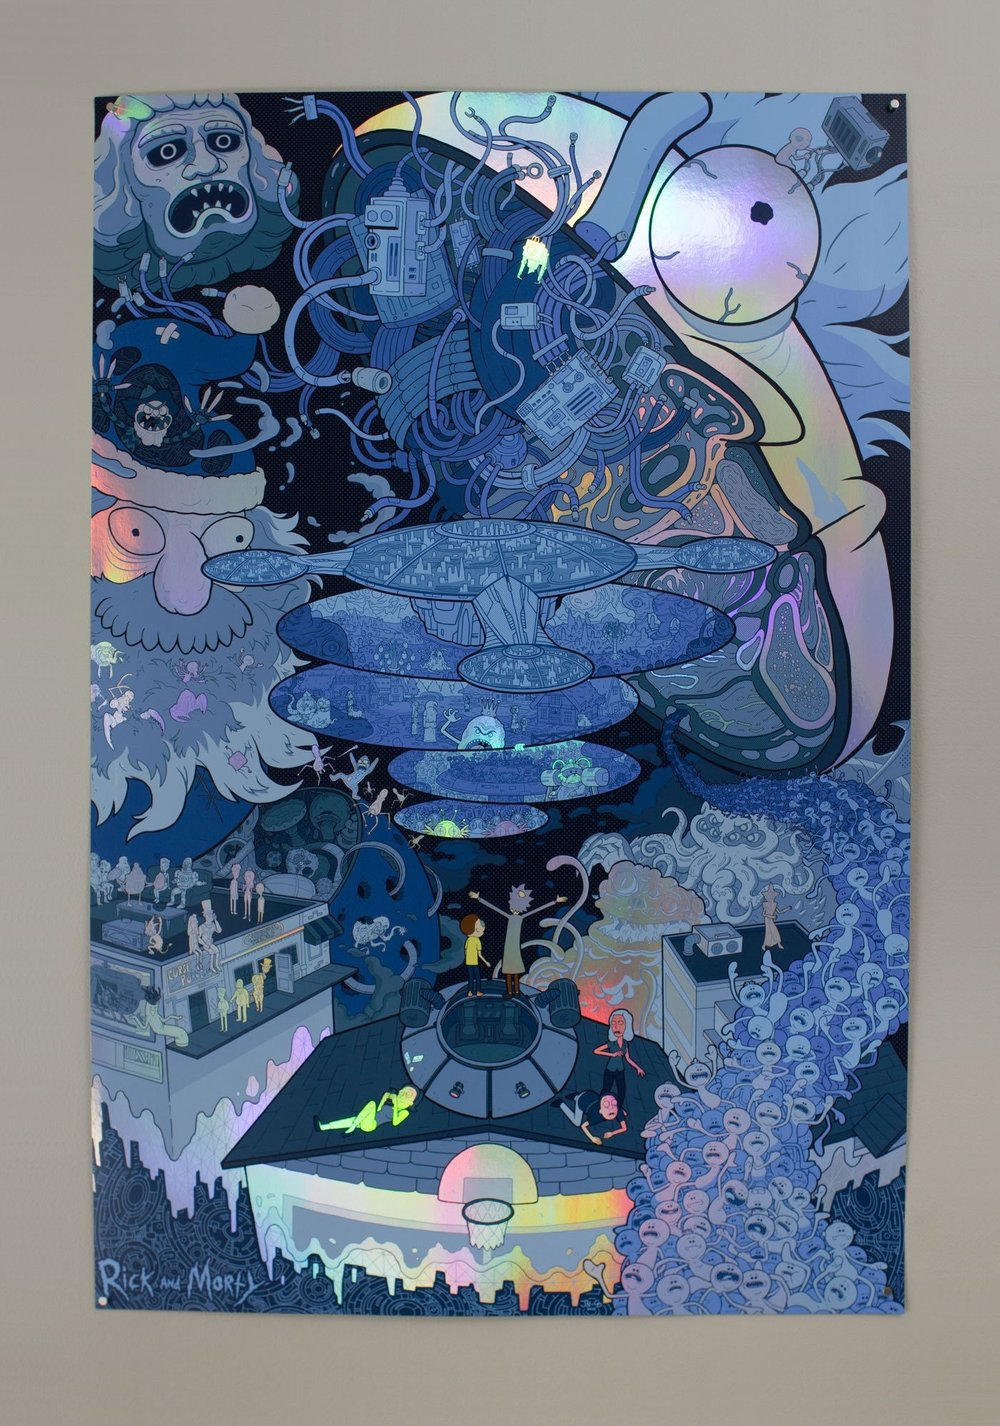 Rick and Morty: Season 1 - Artist Variant